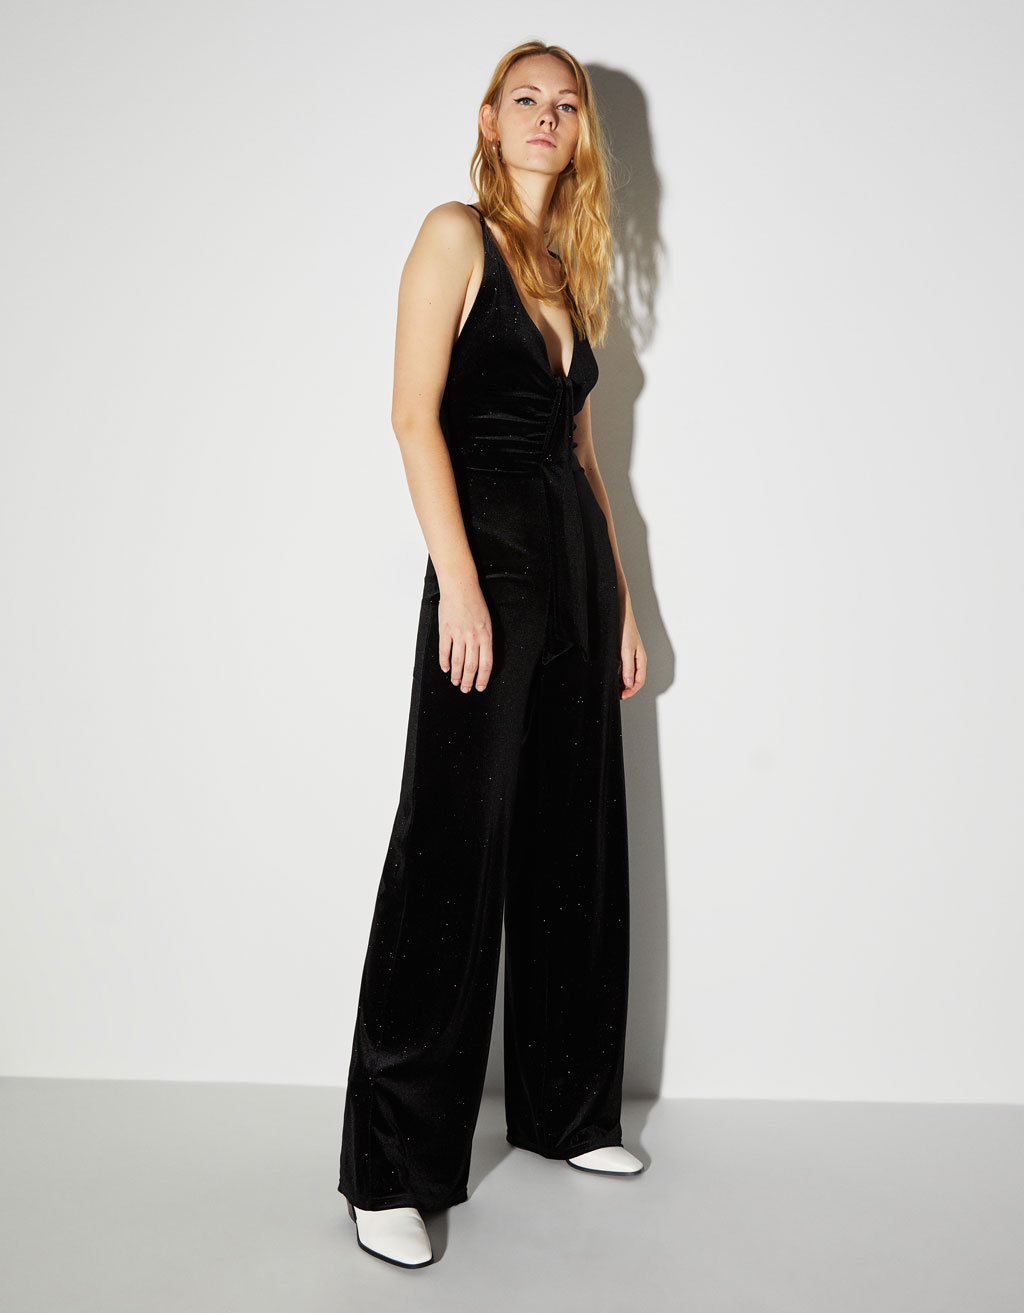 Low-cut jumpsuit with glitter